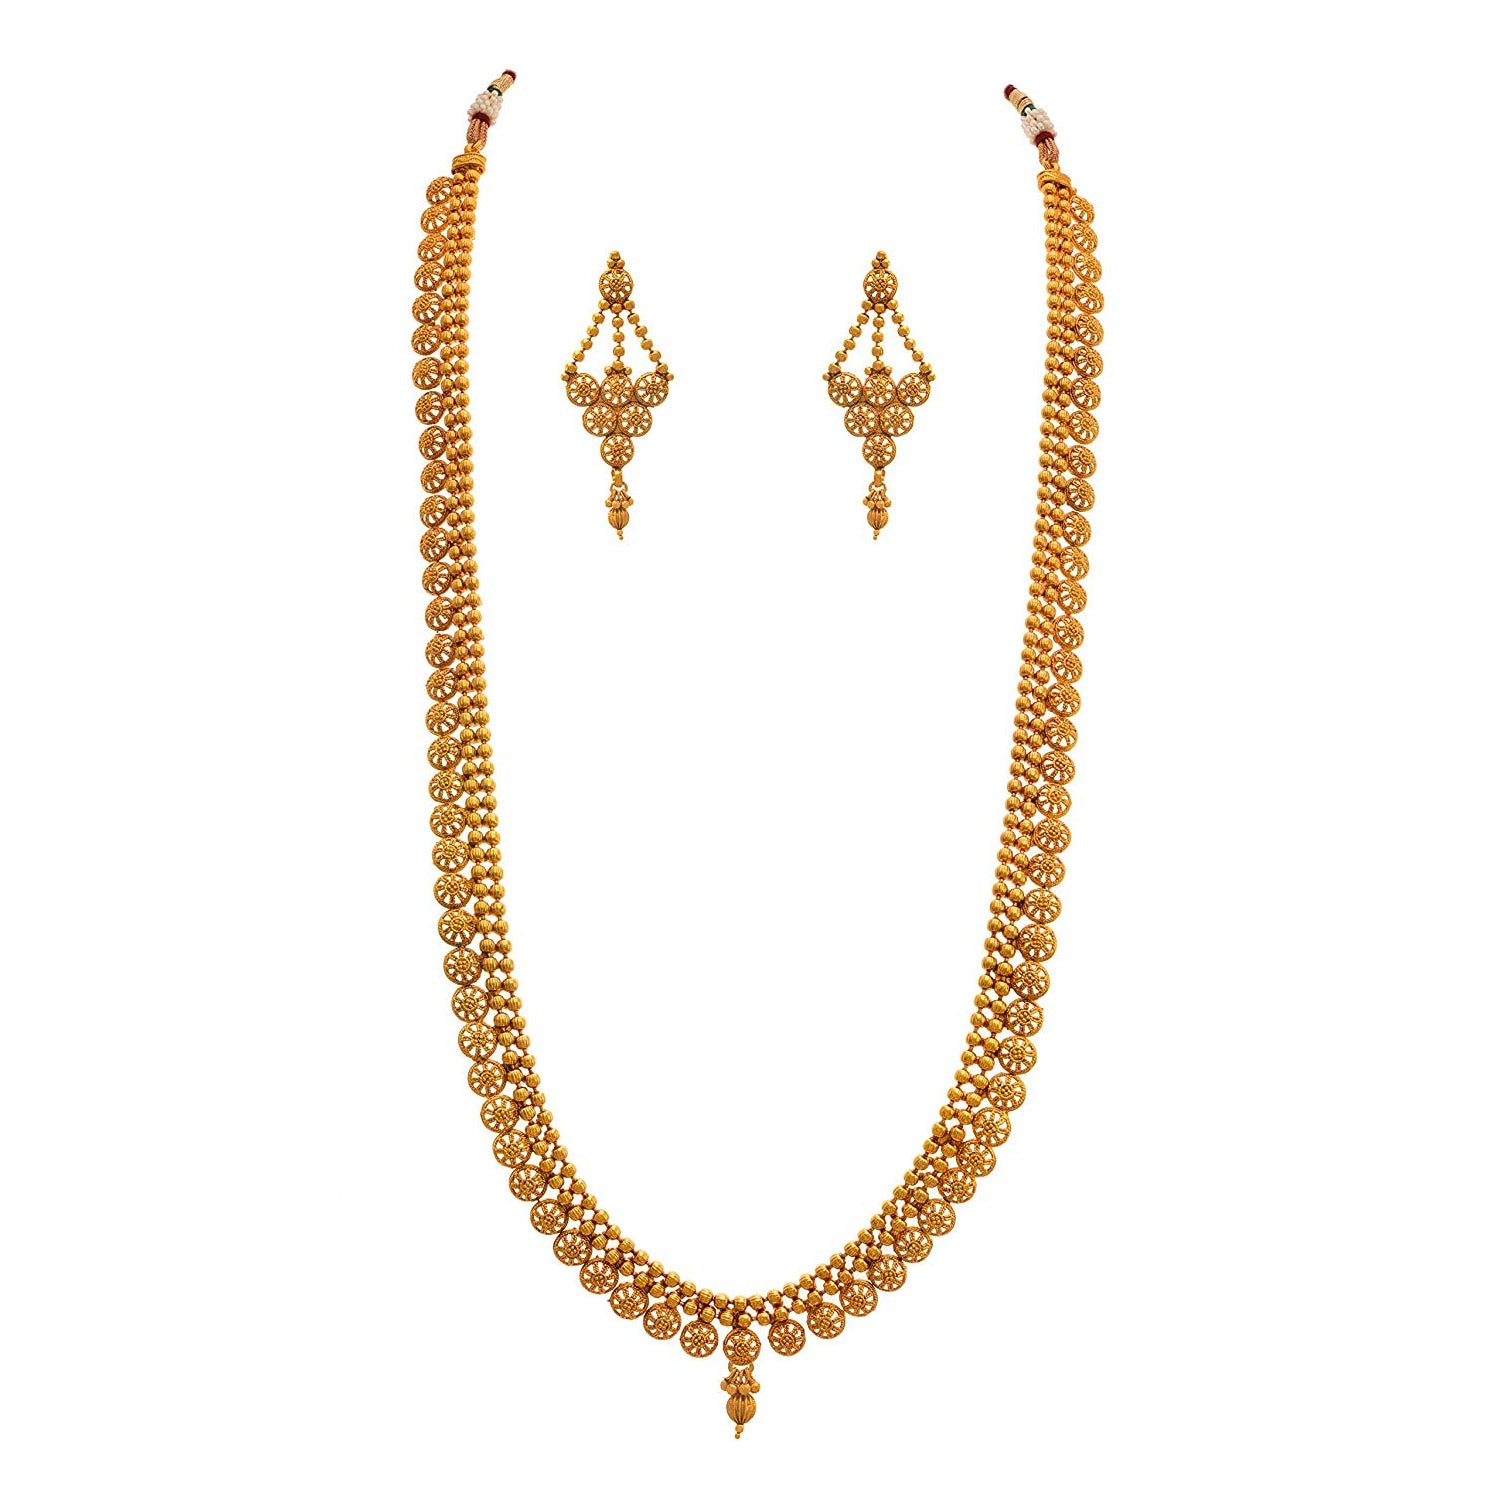 Jfl - Jewellery for Less Traditional Ethnic One Gram Gold Plated  Long Necklace Set for Women